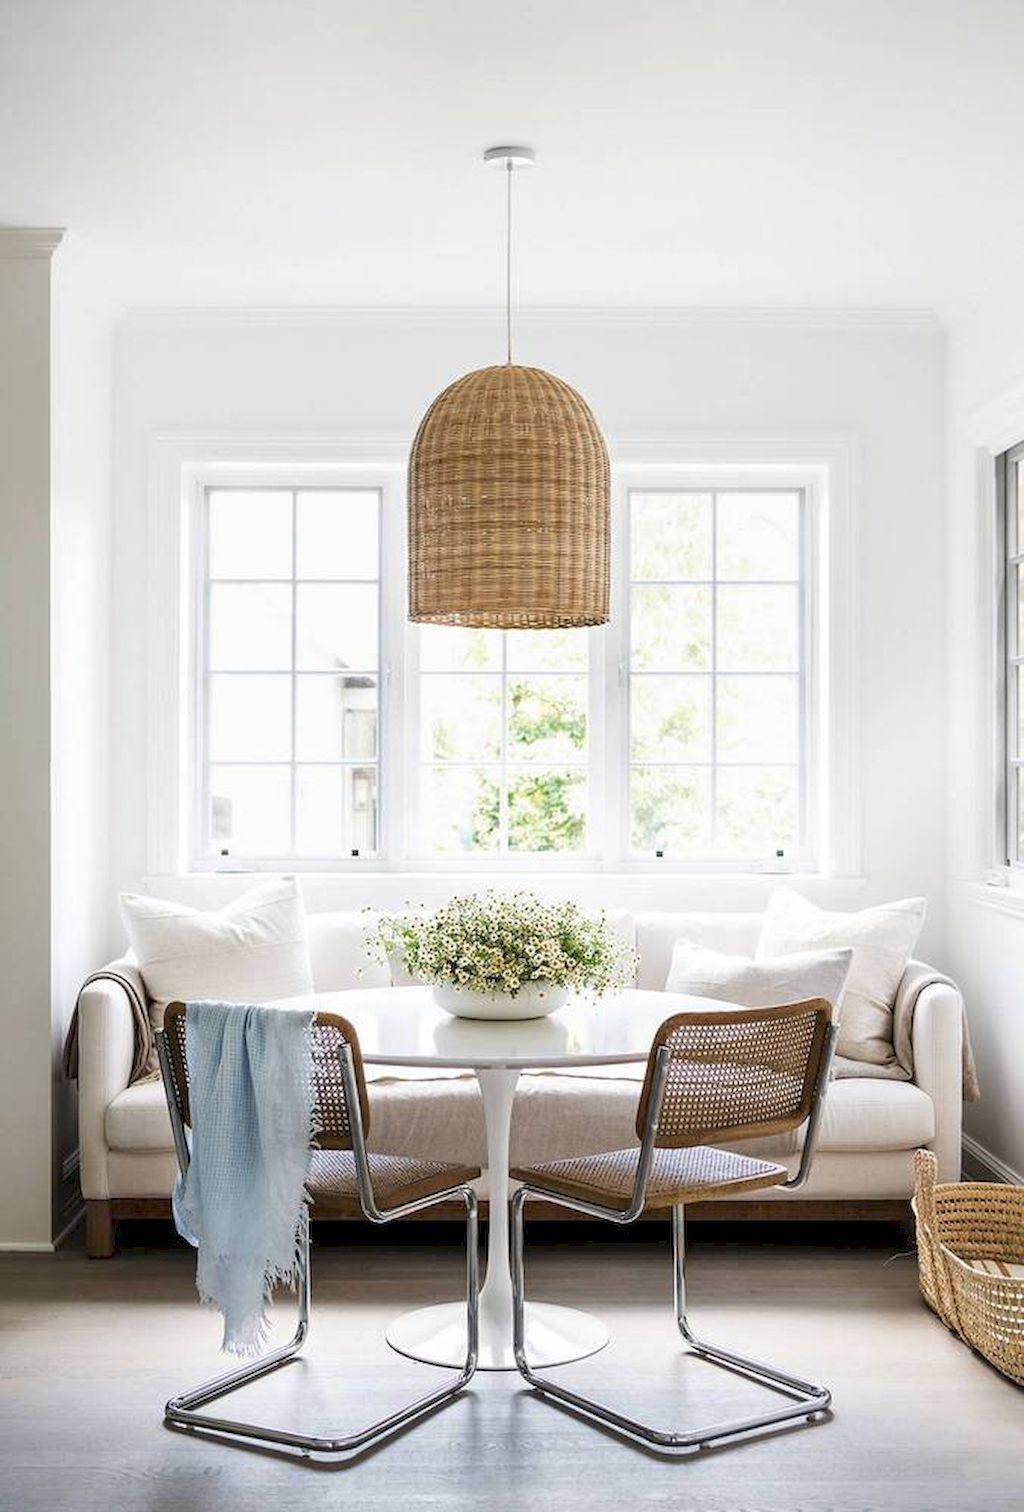 75 Genius Small Dining Room Layout Ideas  Small Dining Rooms Pleasing Dining Room Layout Review